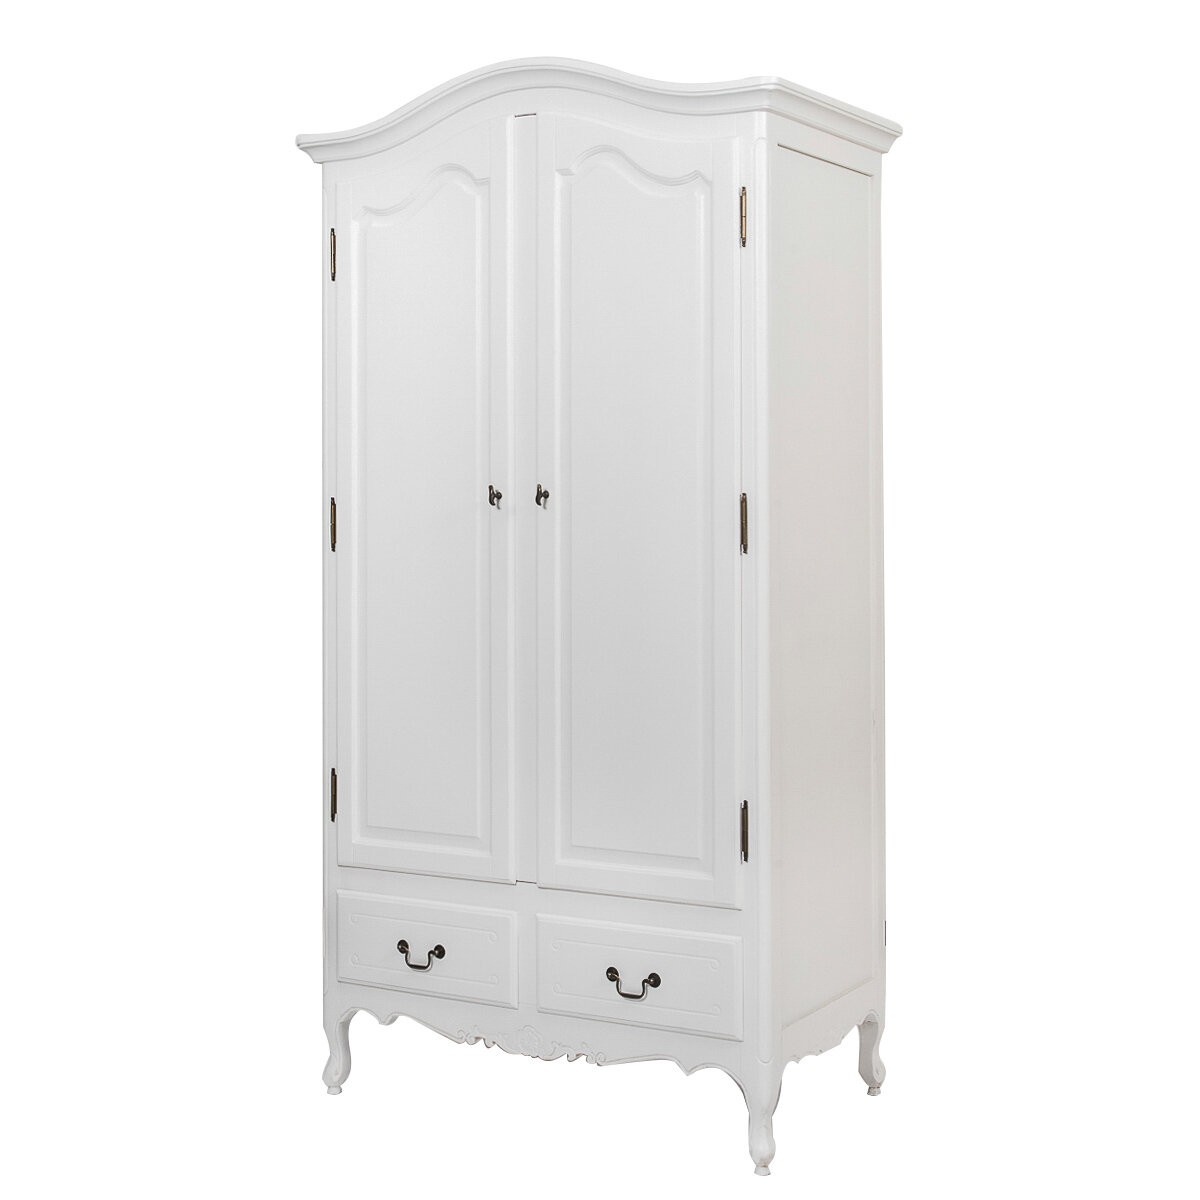 French Provincial Furniture Wardrobe With Drawers In White